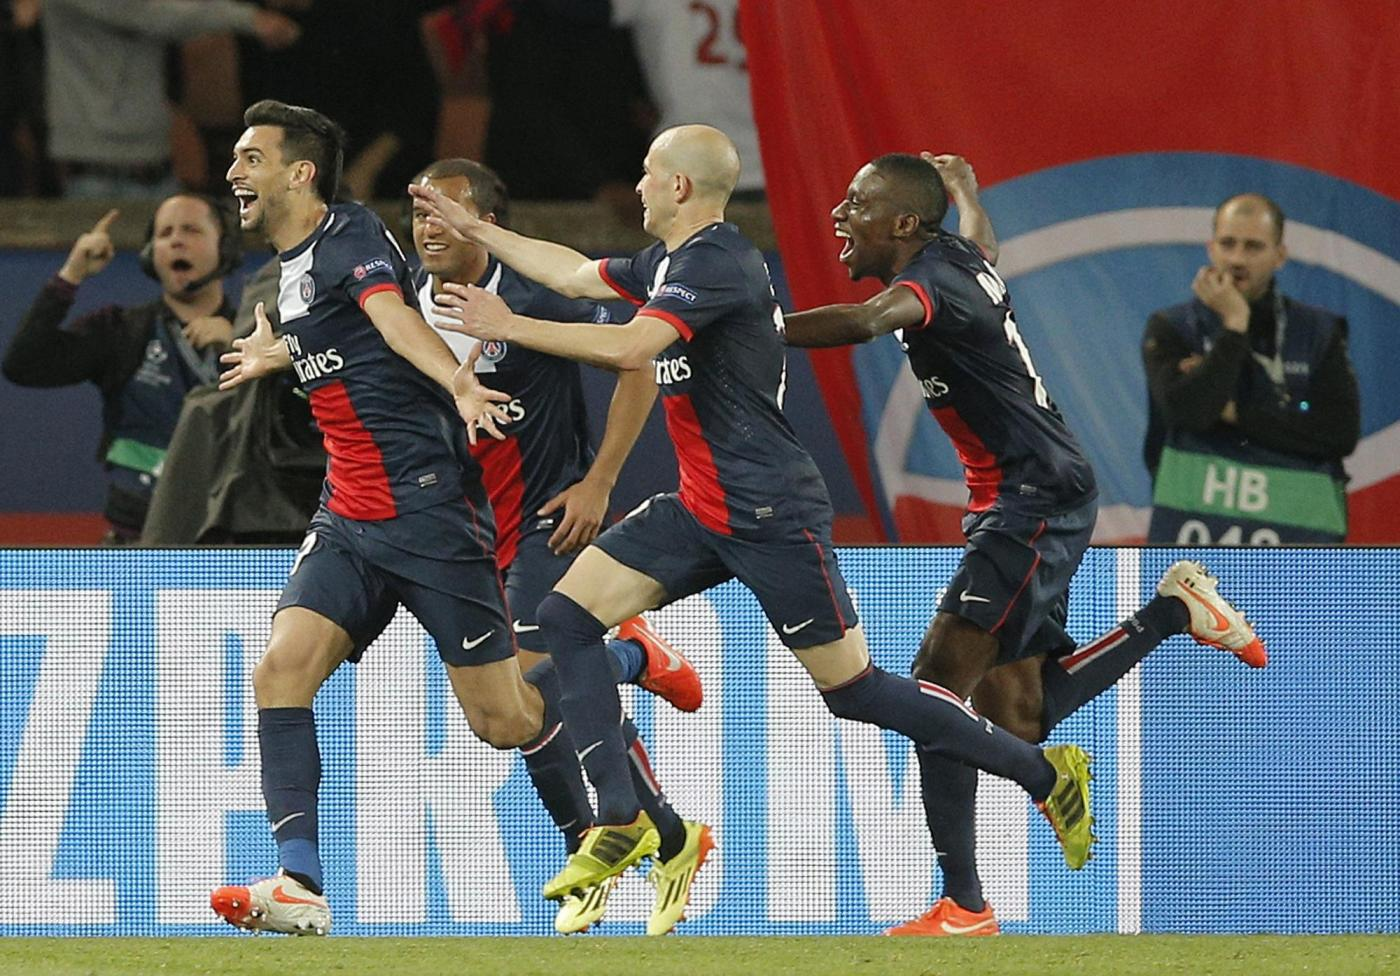 Champions League 2013/14: Real e PSG ipotecano la qualificazione